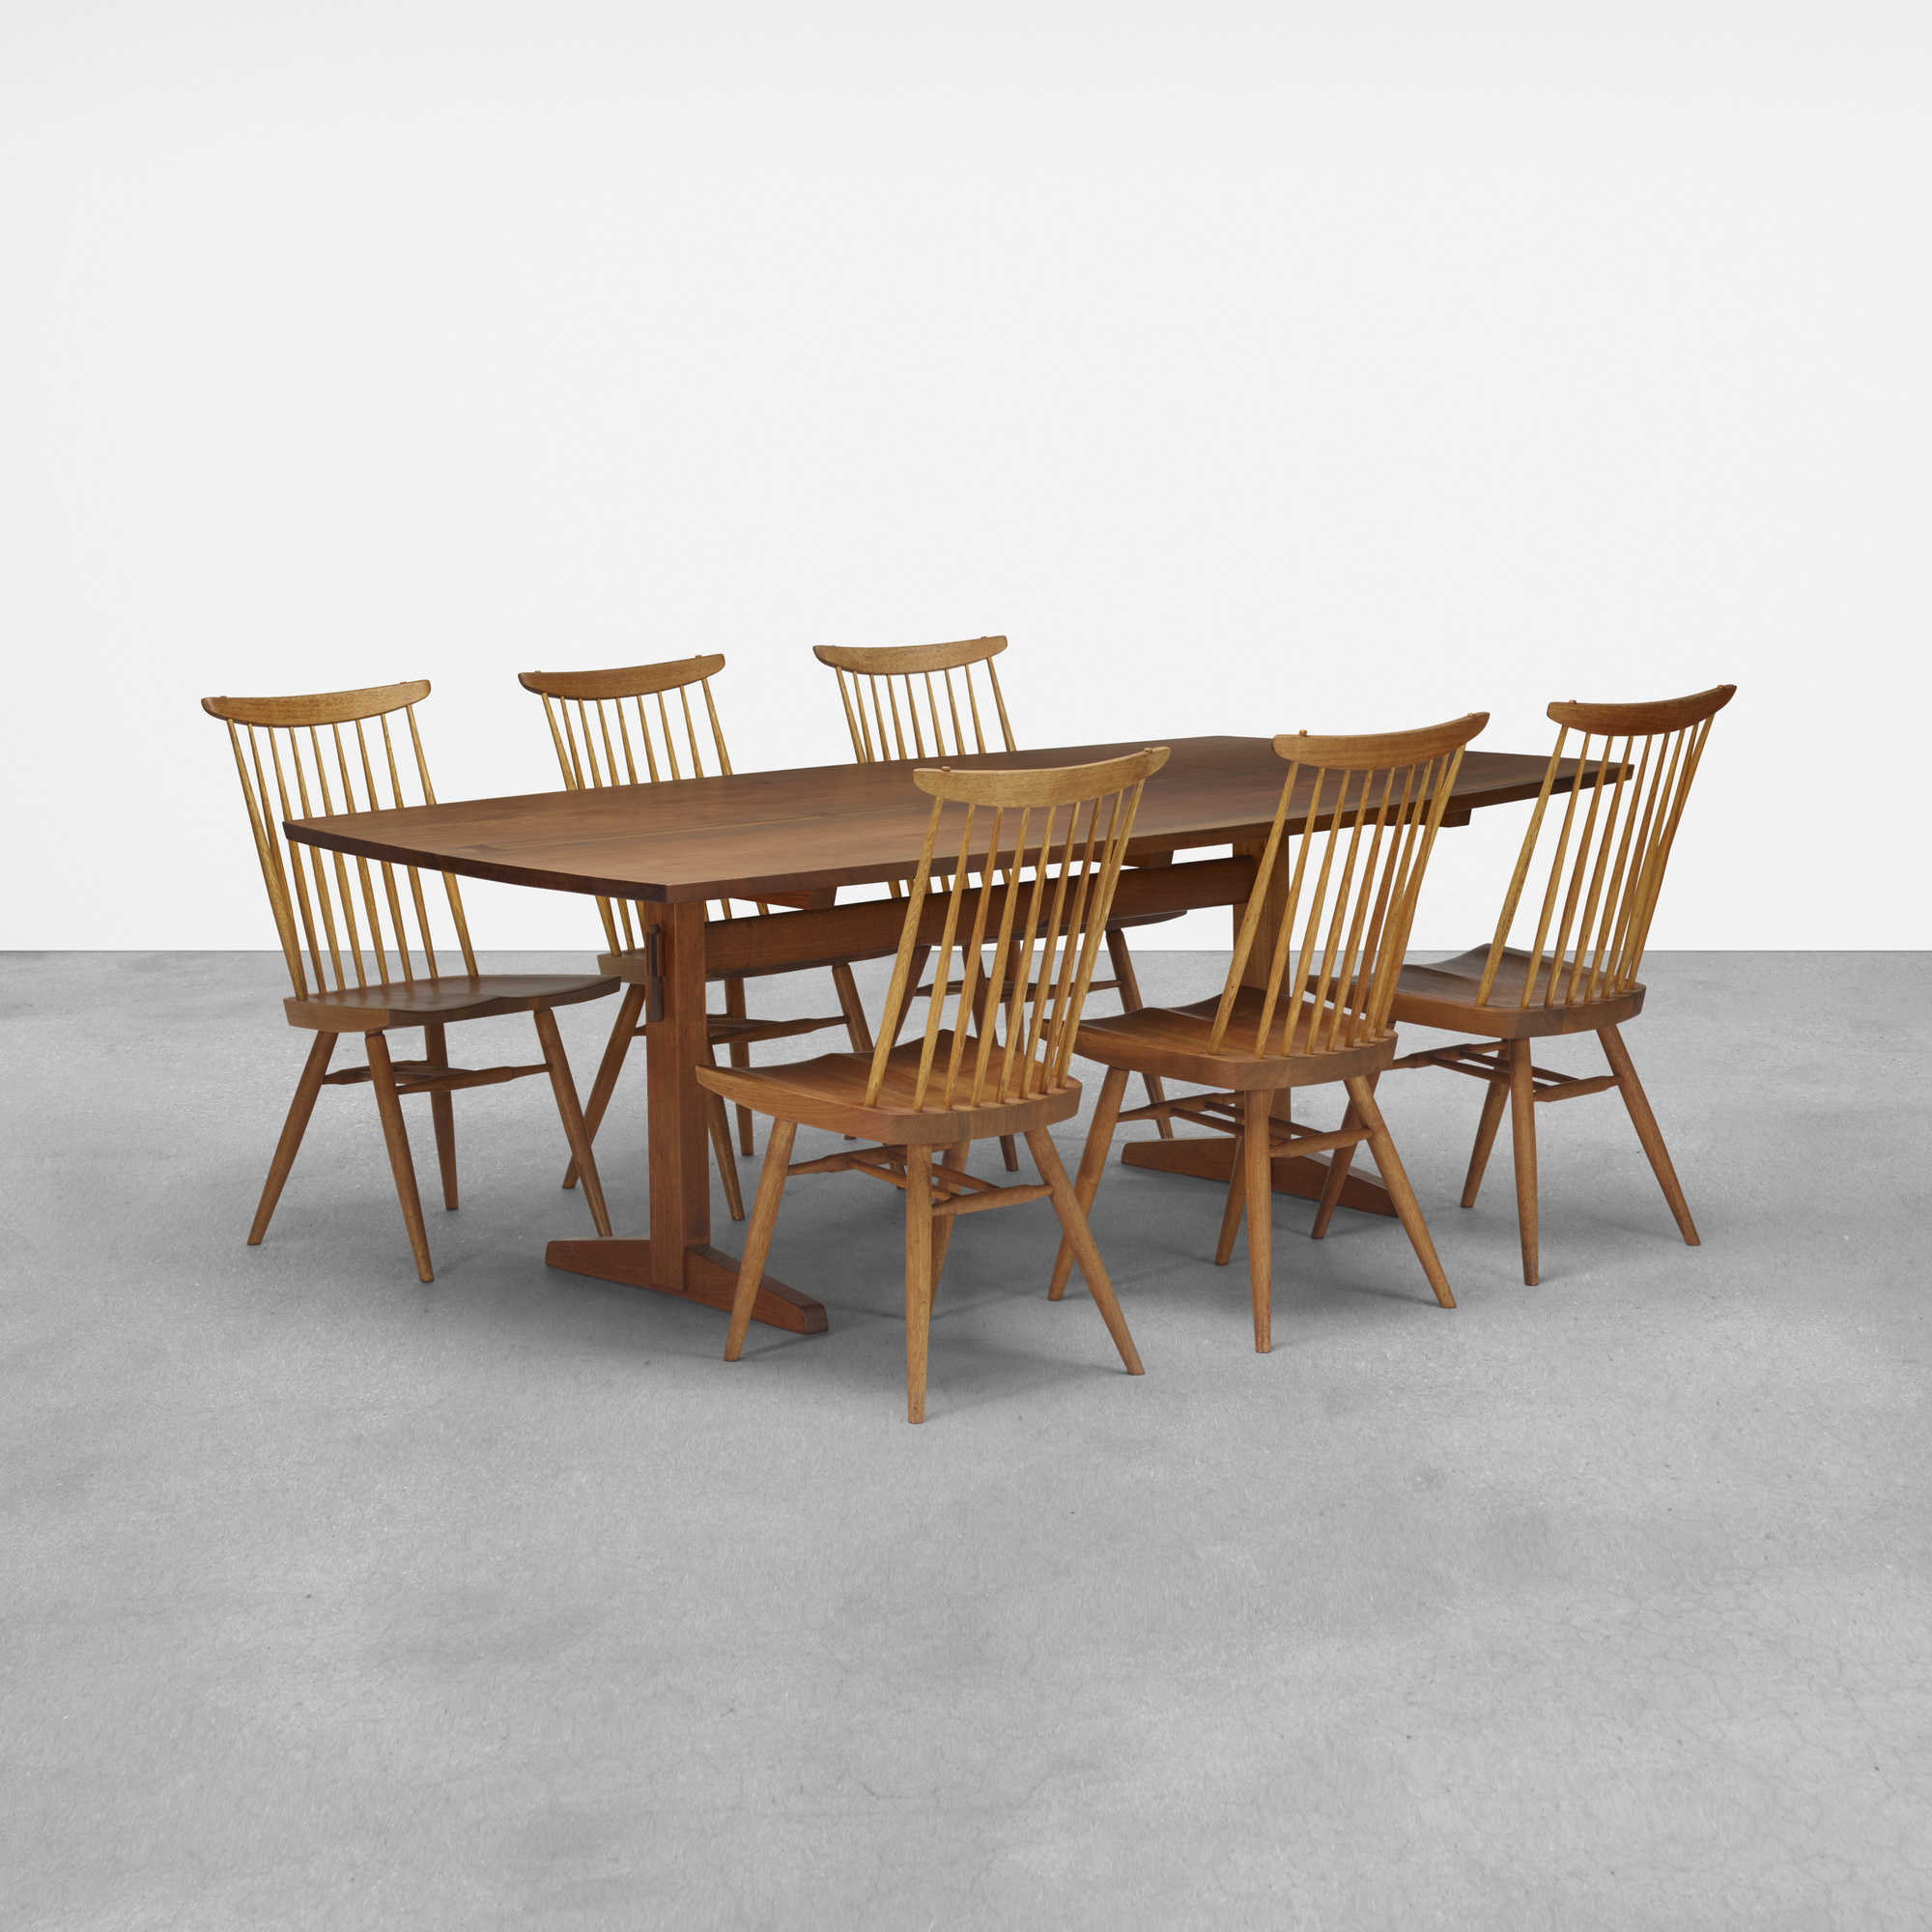 100 George Nakashima Furniture Pair Of George Nakashima Slatted Walnut Chairs U2013